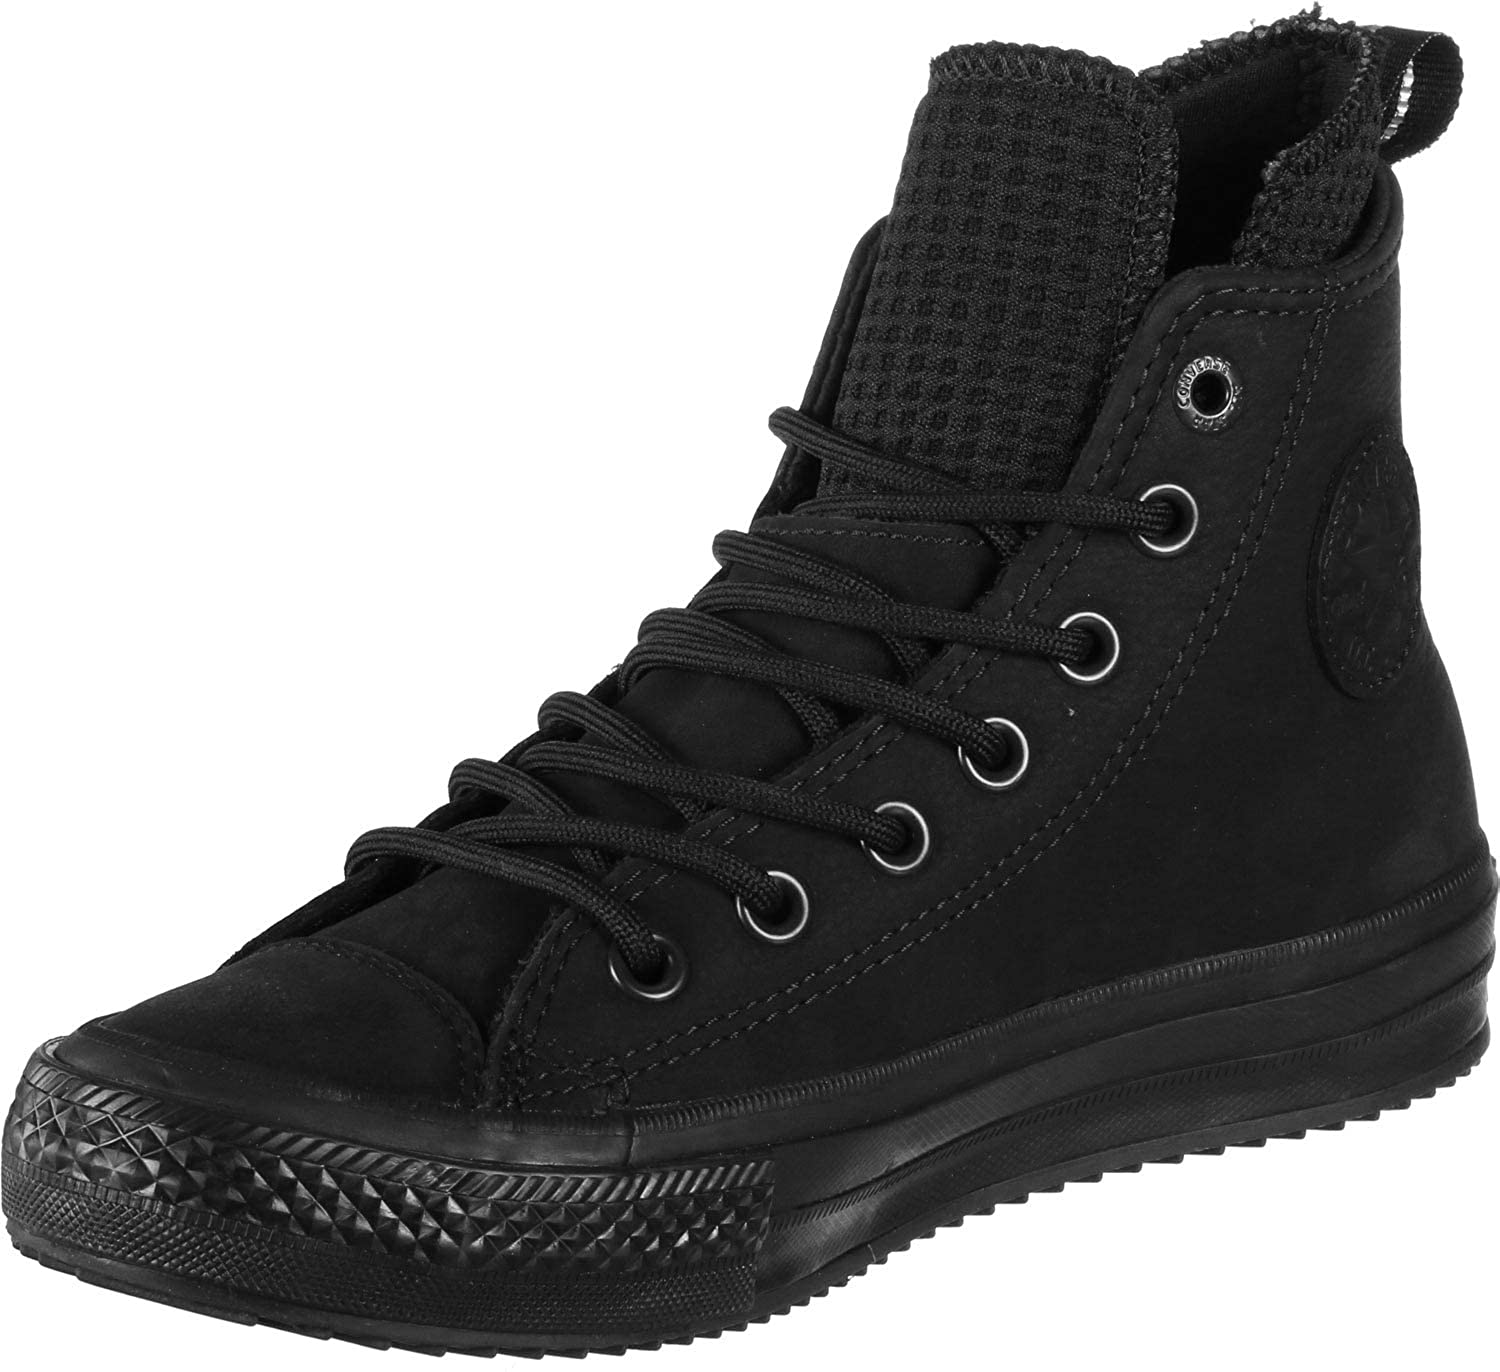 1f27c05723a37 Amazon.com | Converse Unisex Chuck Taylor All Star Waterproof ...